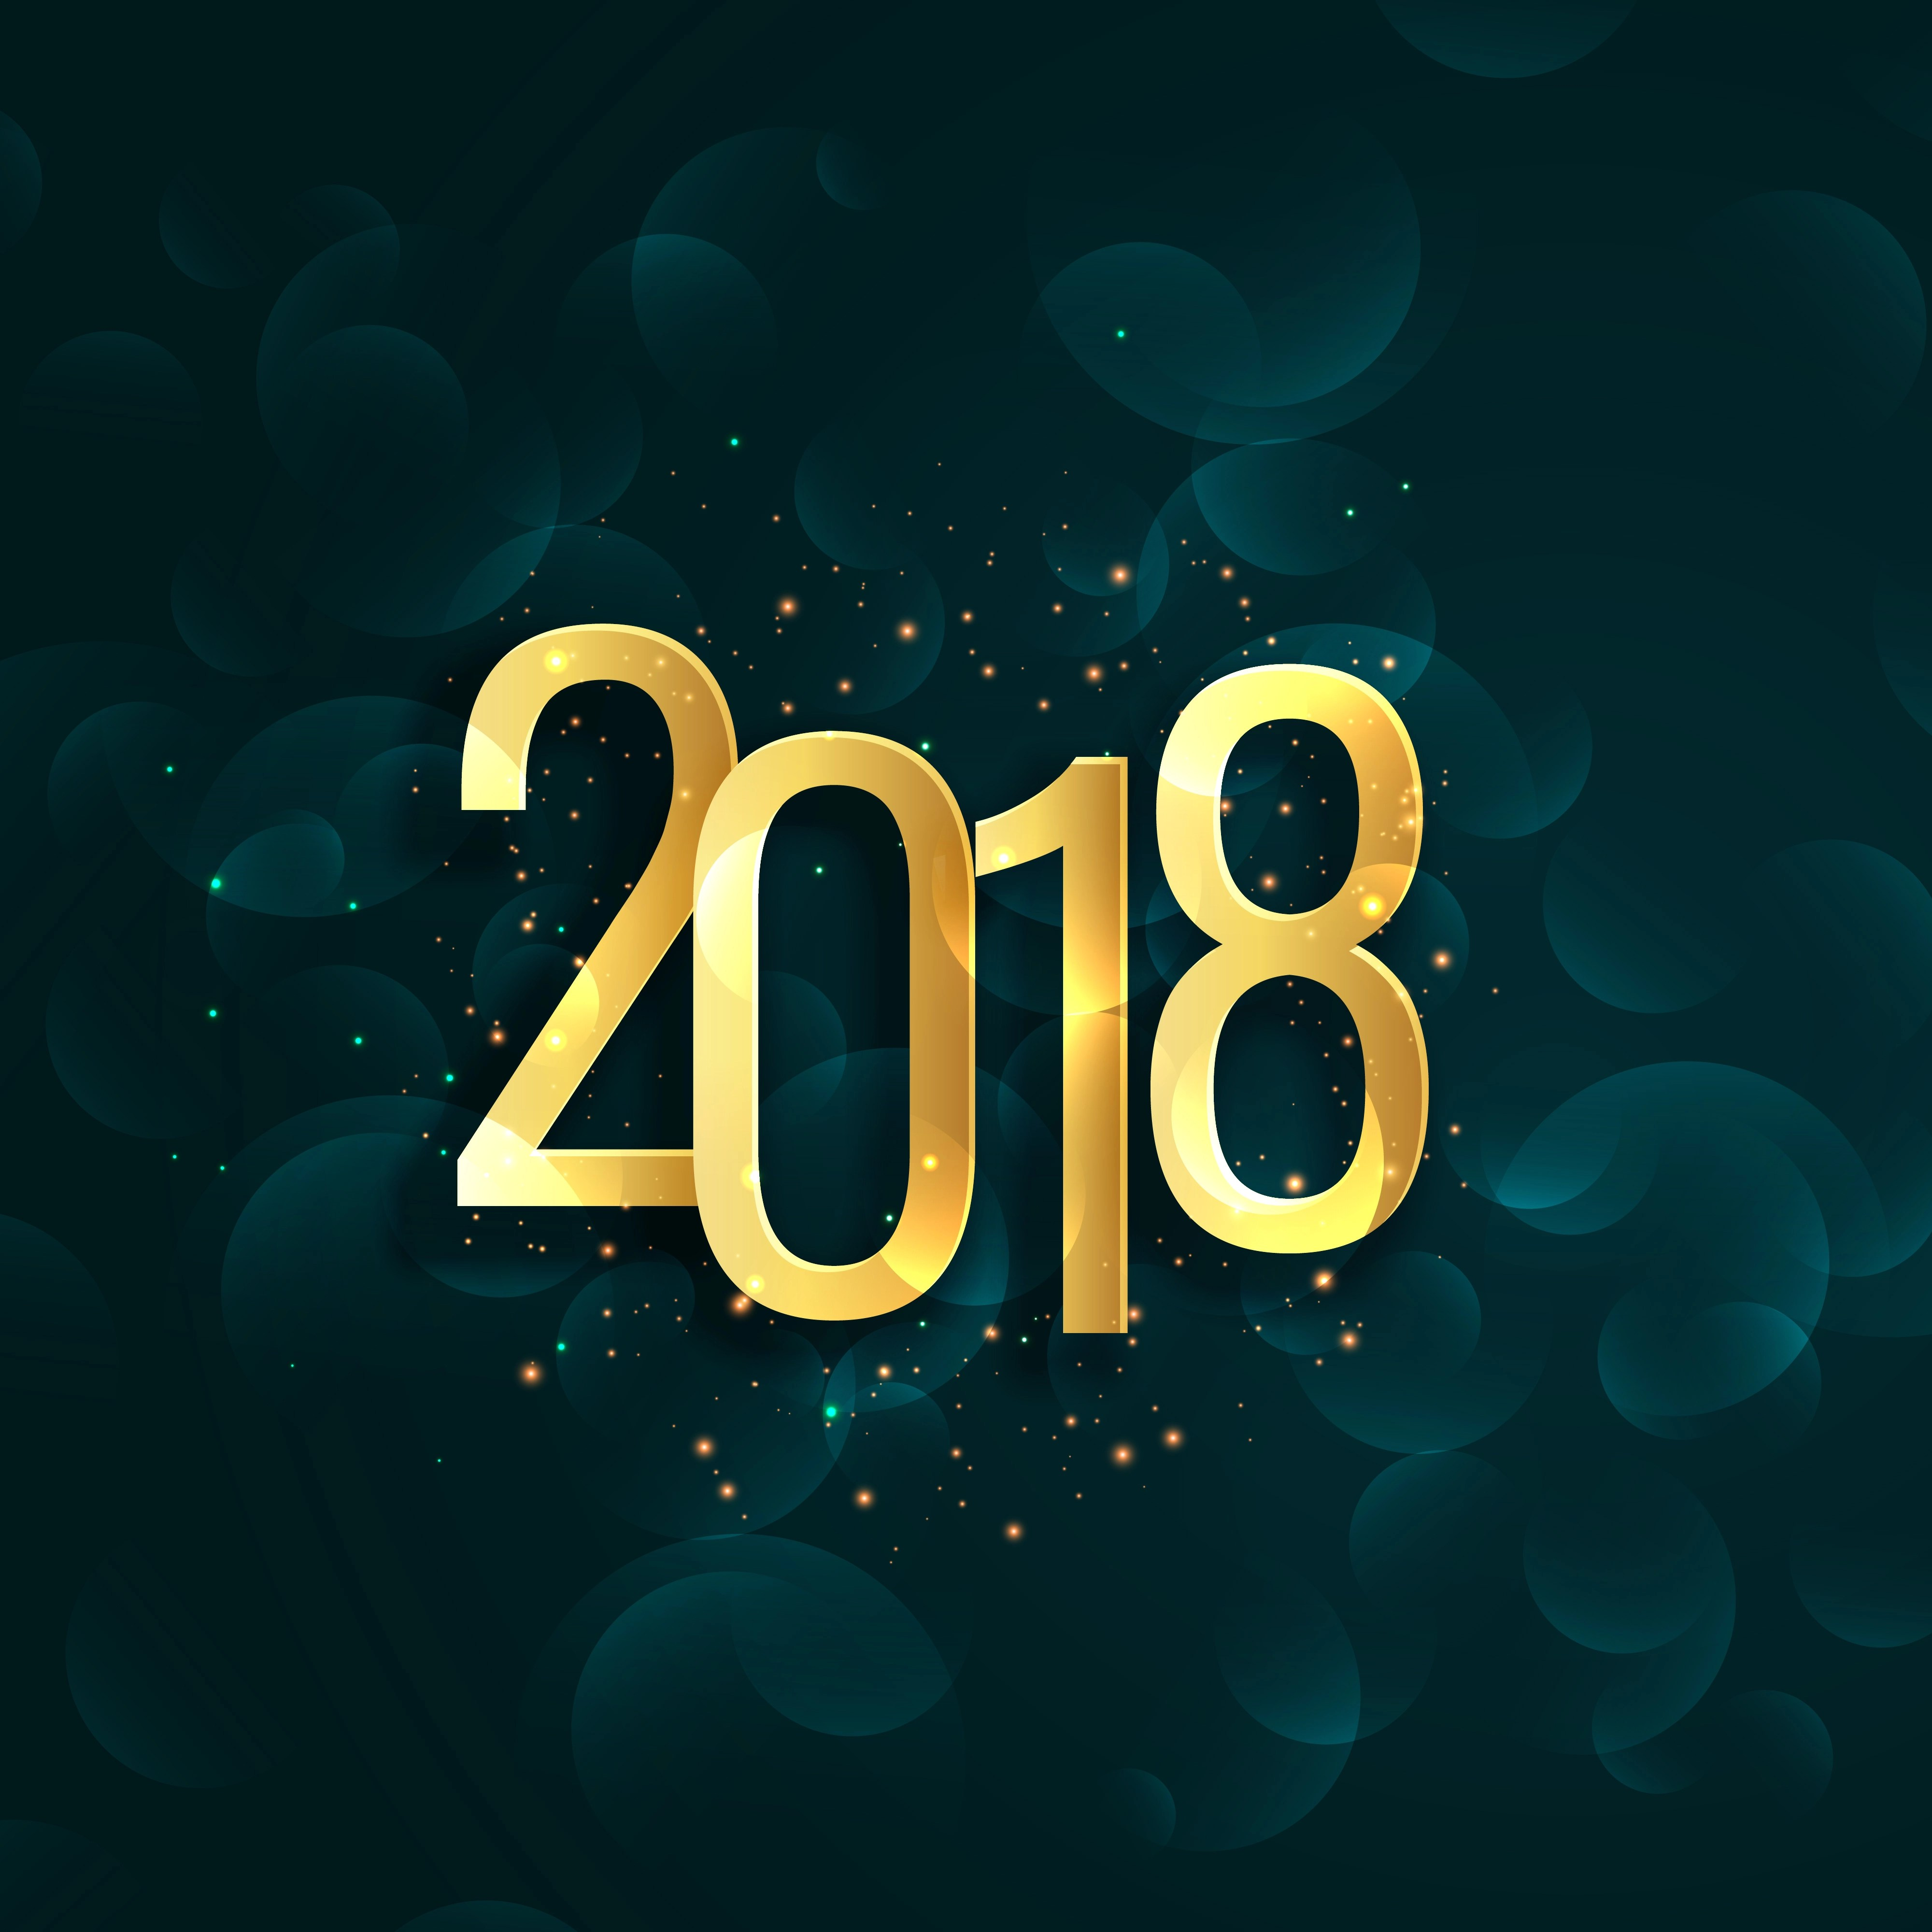 Happy New Year Background With Text Writtern In